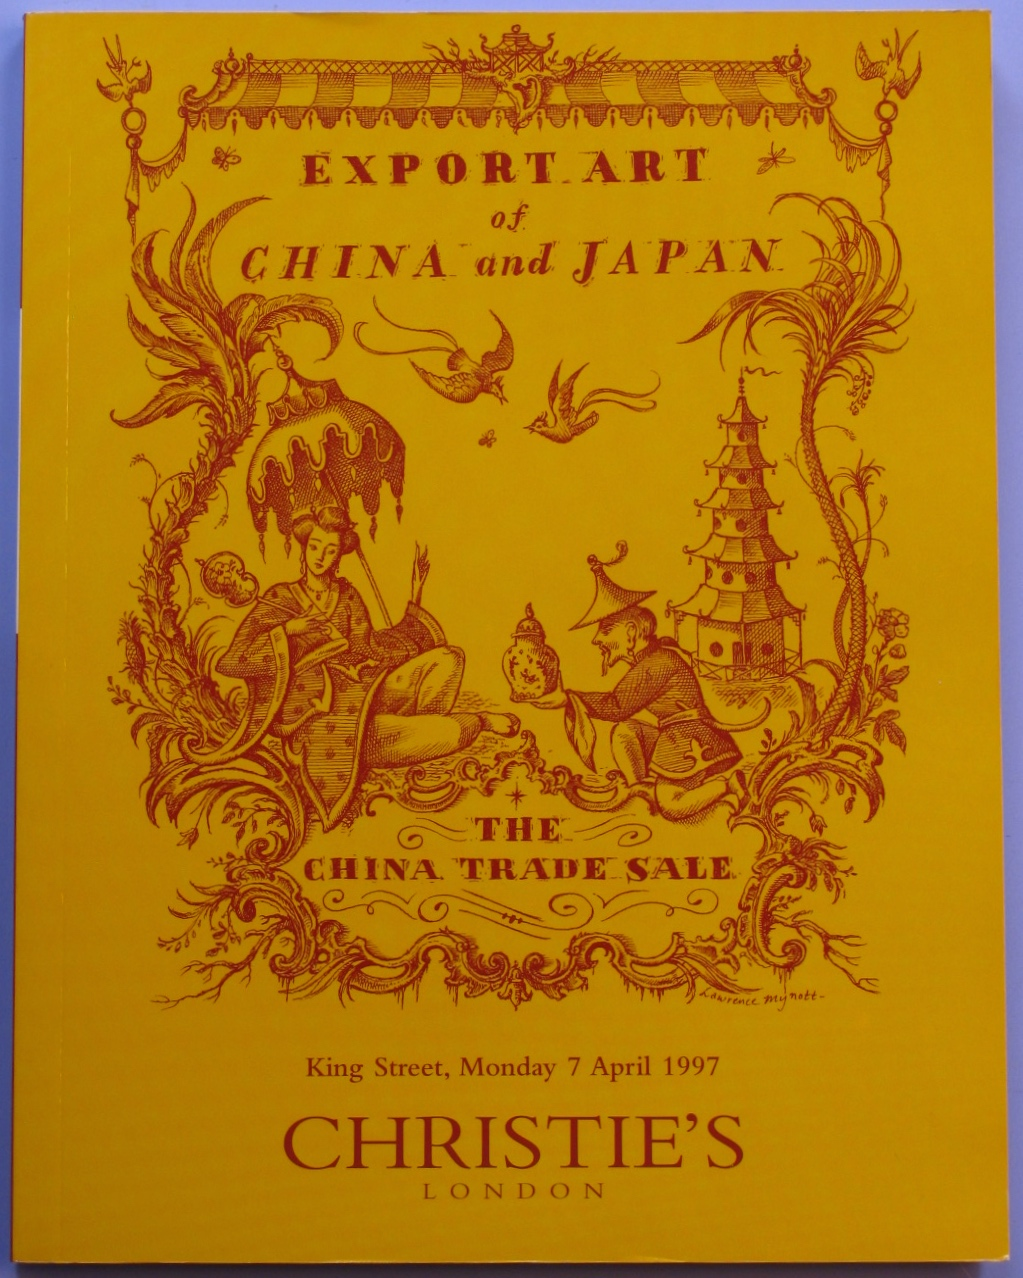 CL19970407: Bookshop: [1997] Christie's Export Art of China and Japan